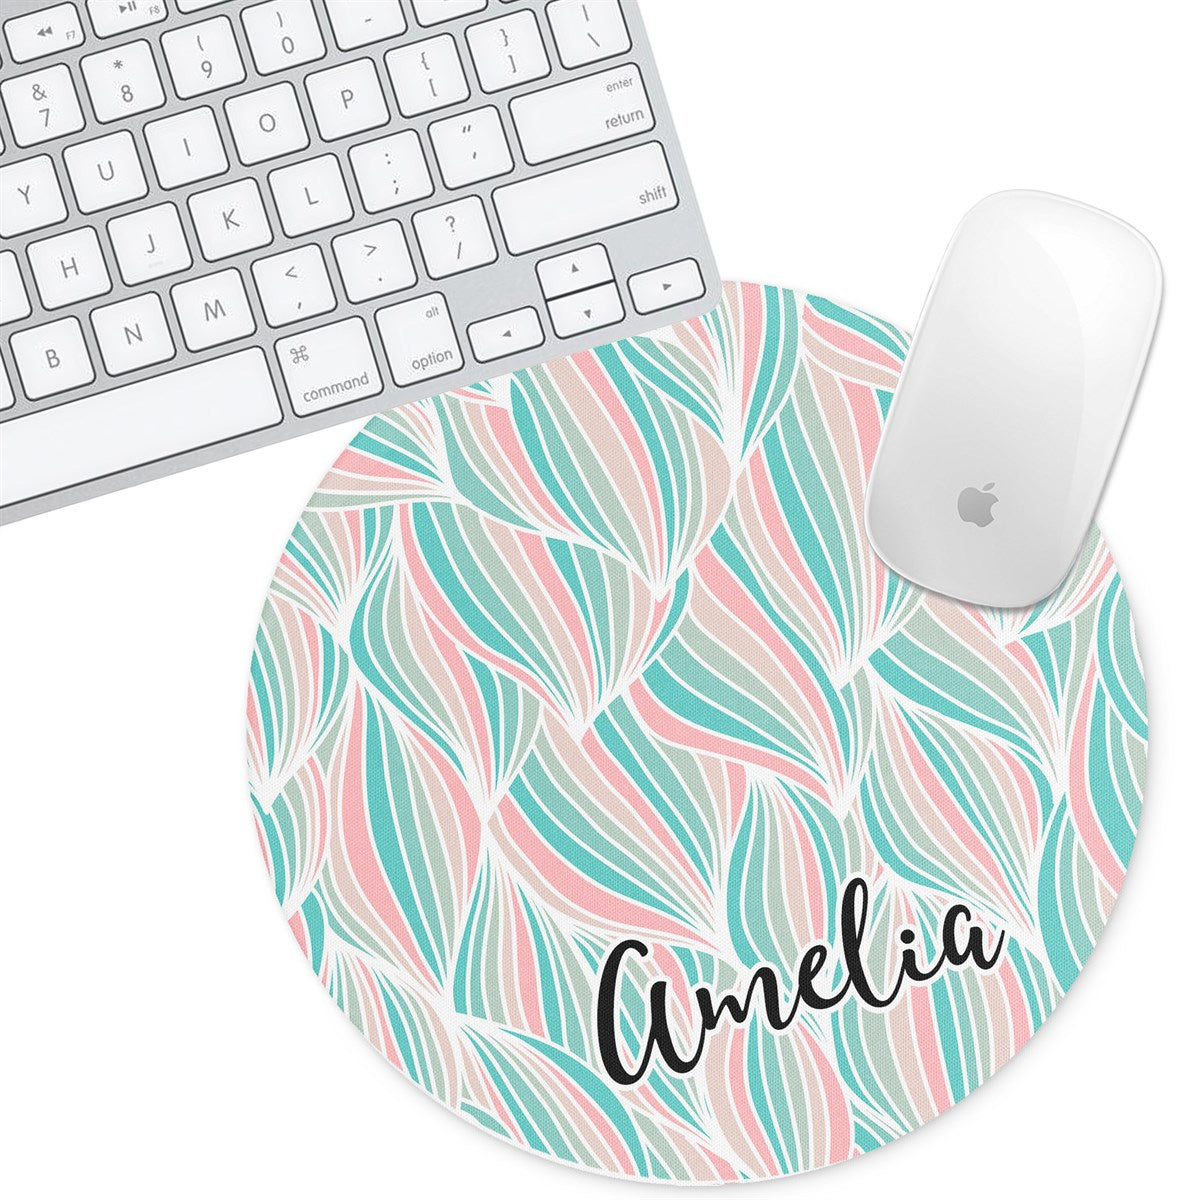 Personalized Round Mouse Pad - Amelia - Second East